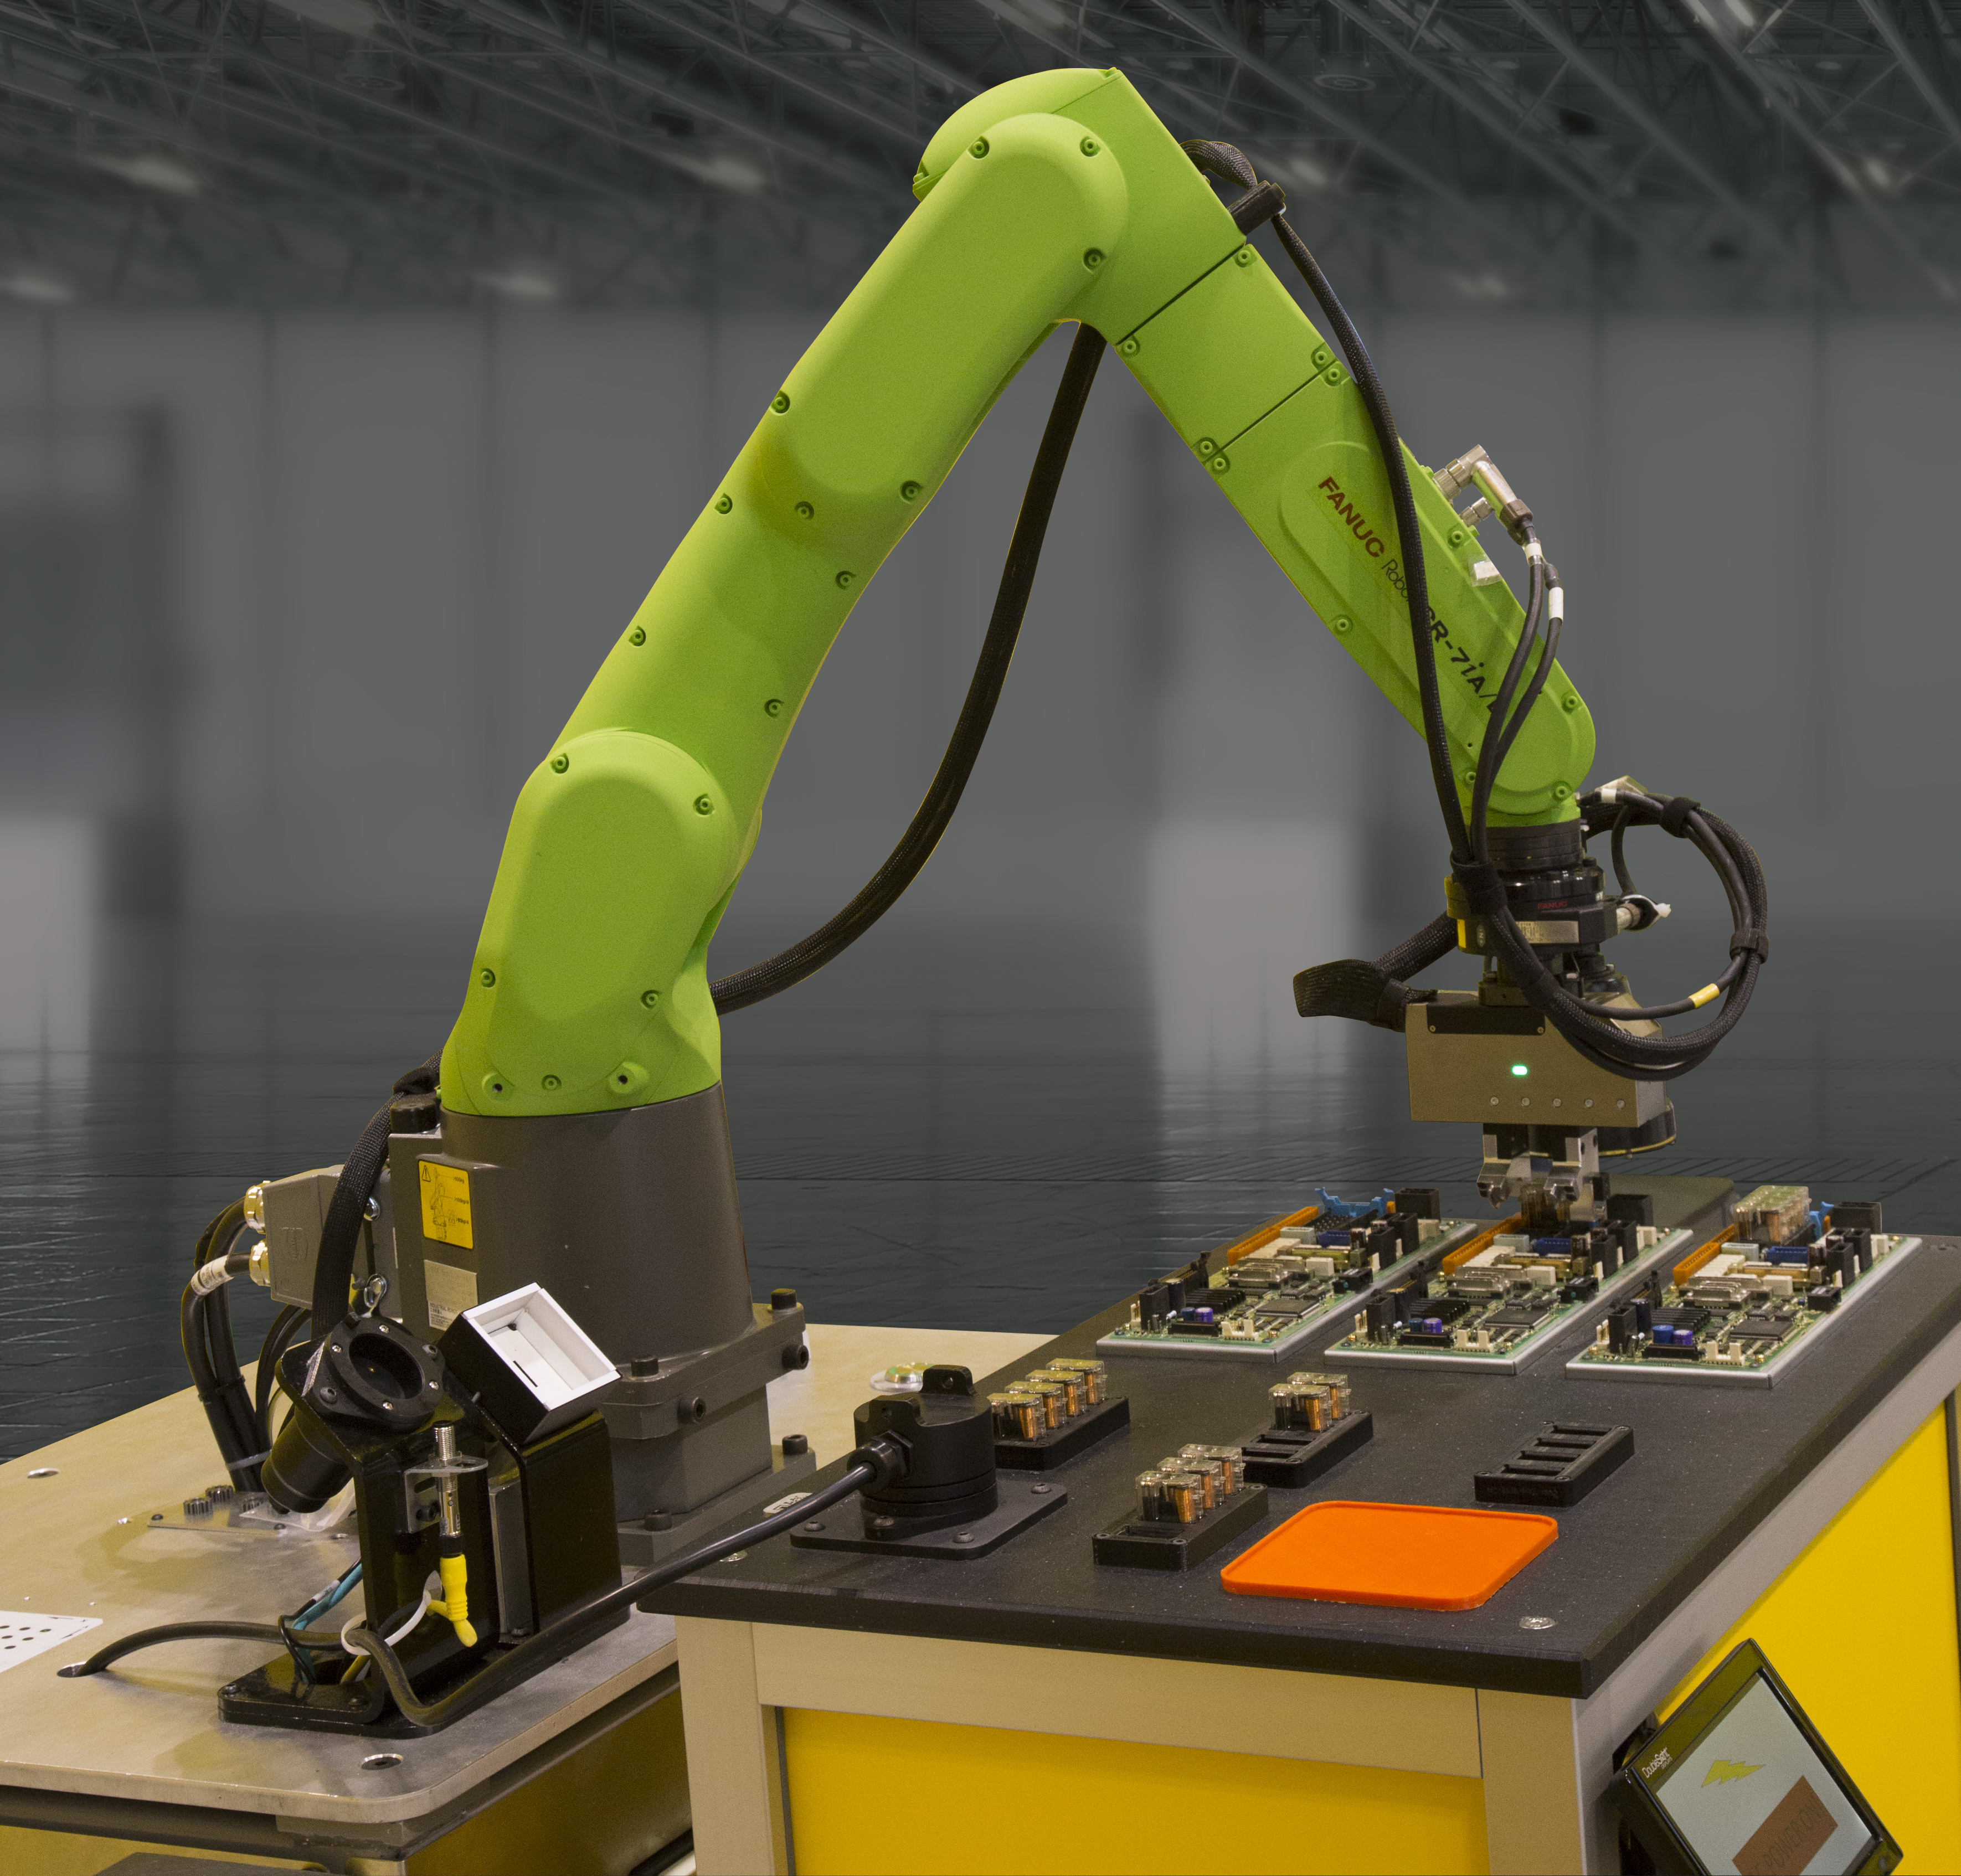 Fanuc launches two new small collaborative robots to go with its big heavy one